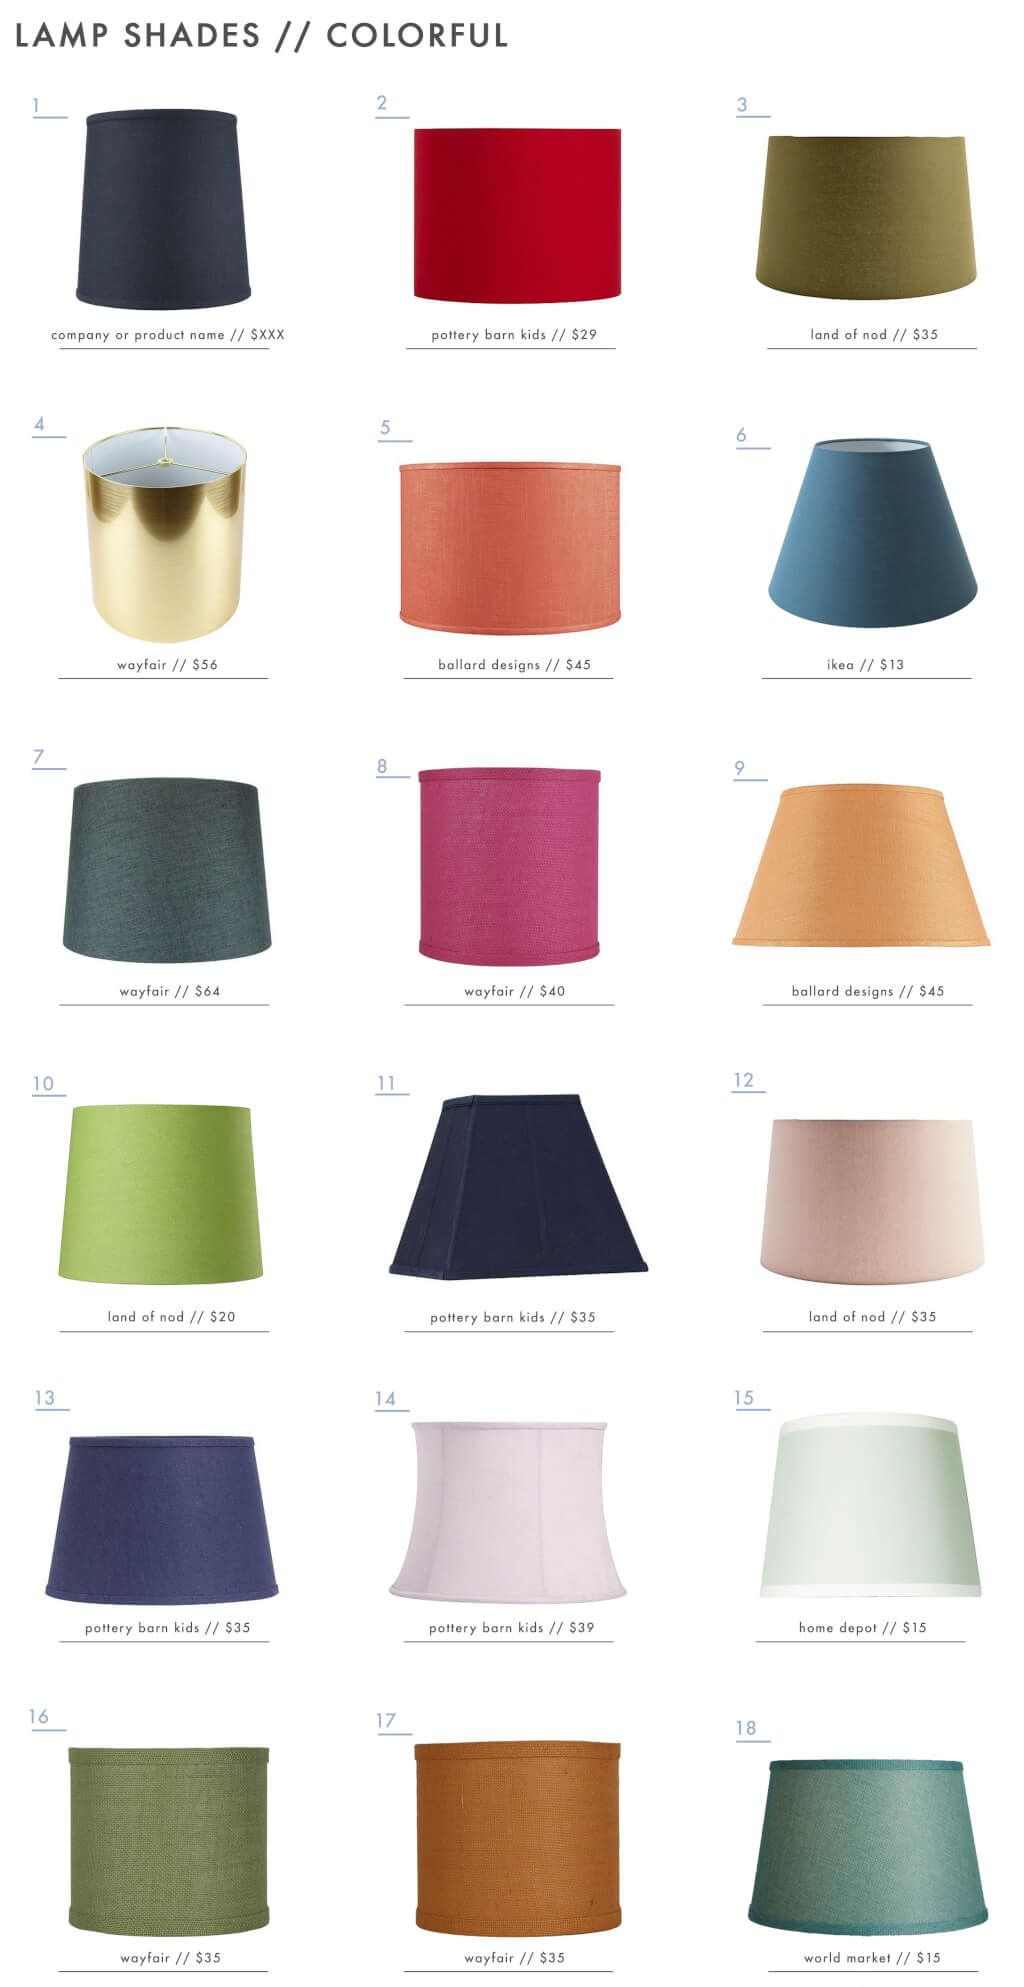 Patterned Lampshades The Surprising Value Of Colored Textured Or Patterned Lampshades